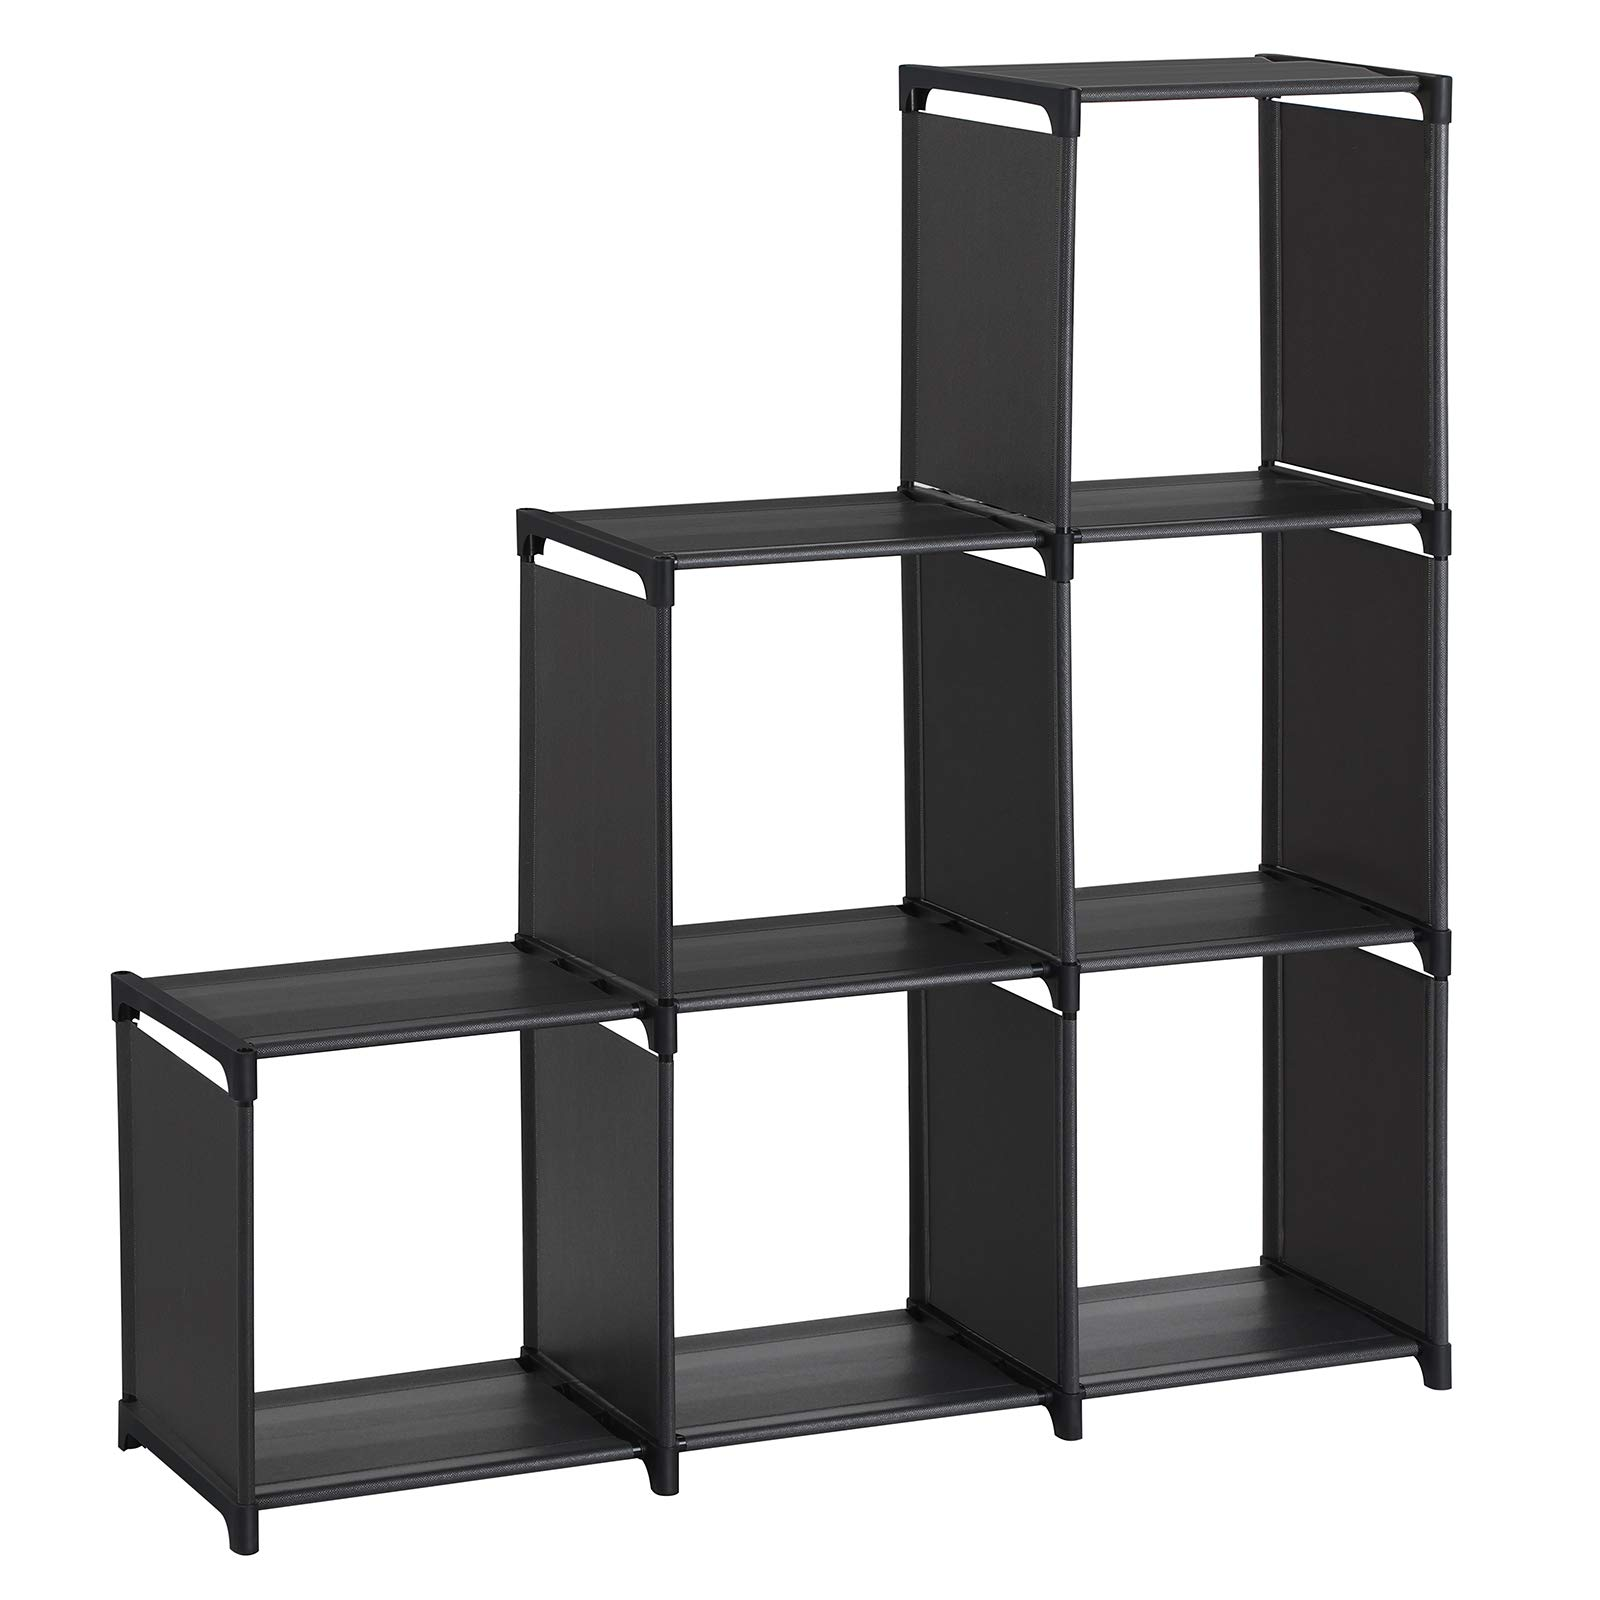 SONGMICS 3-Tier Storage Cube Closet Organizer Shelf 6-Cube Cabinet Bookcase ULSN63BKV1